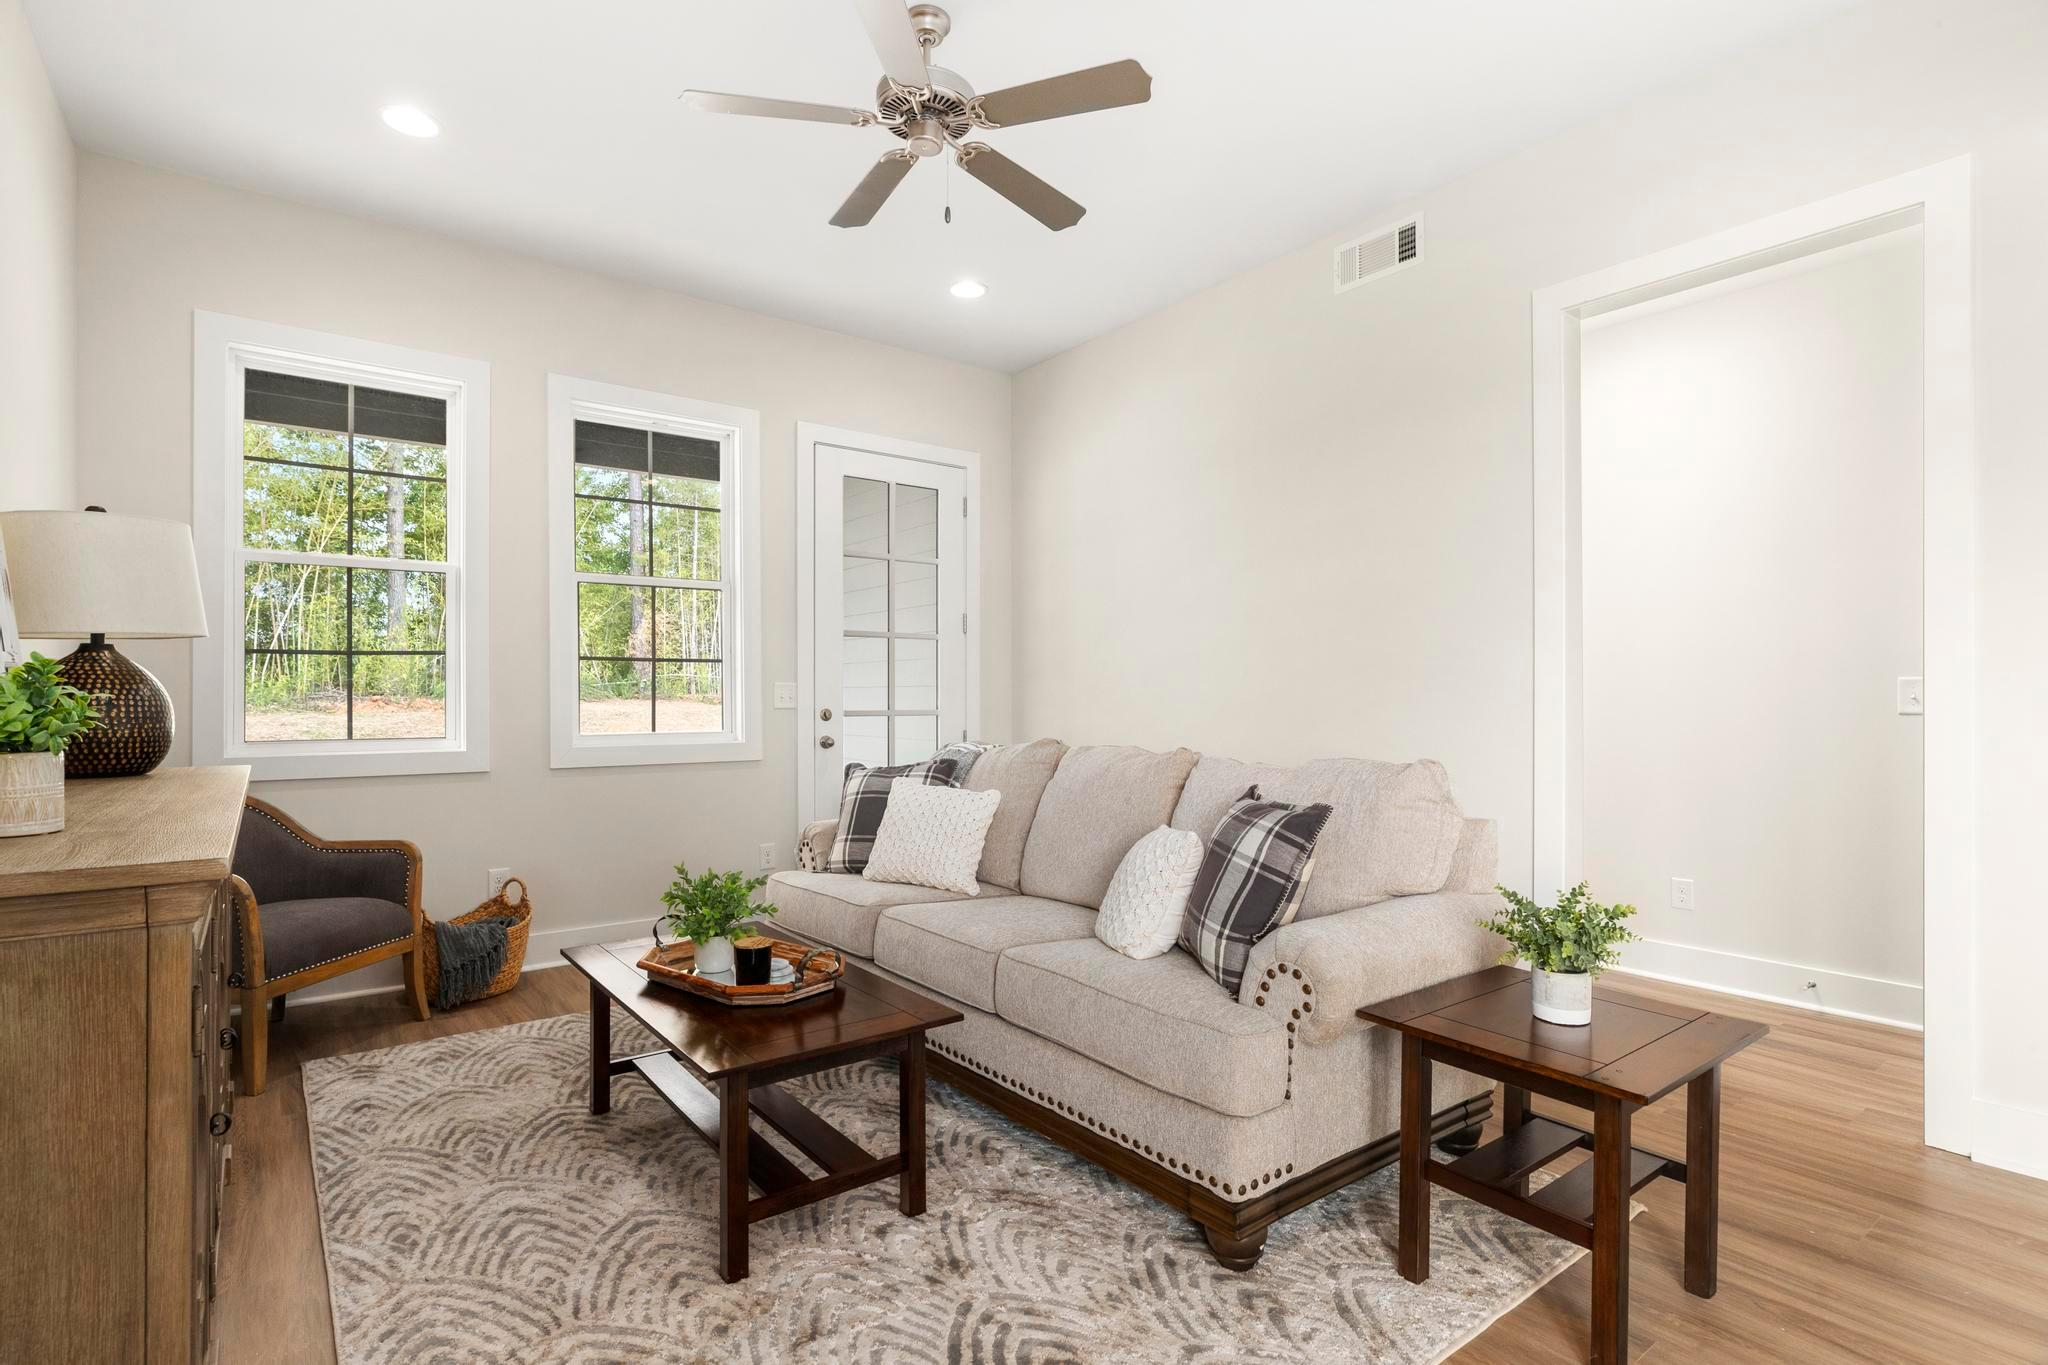 Living Area featured in the 3 Bedroom Interior Unit By Holland Homes in Auburn-Opelika, AL